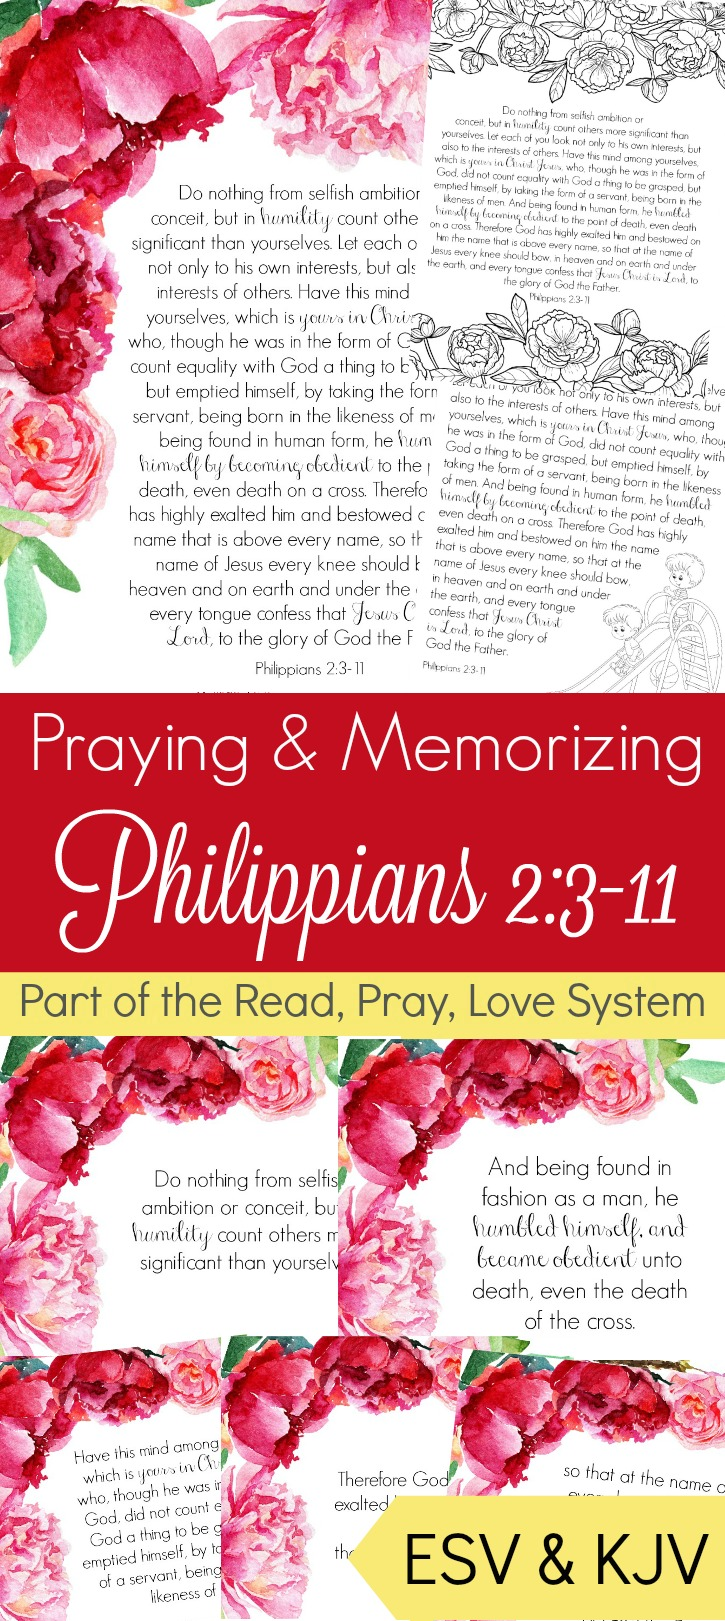 Memorizing scripture to add to your prayer time is an amazing practice. It is even better when you can do it as a family. Philippians 2:3-11 is all about thinking of others and I think that is a great place to start!